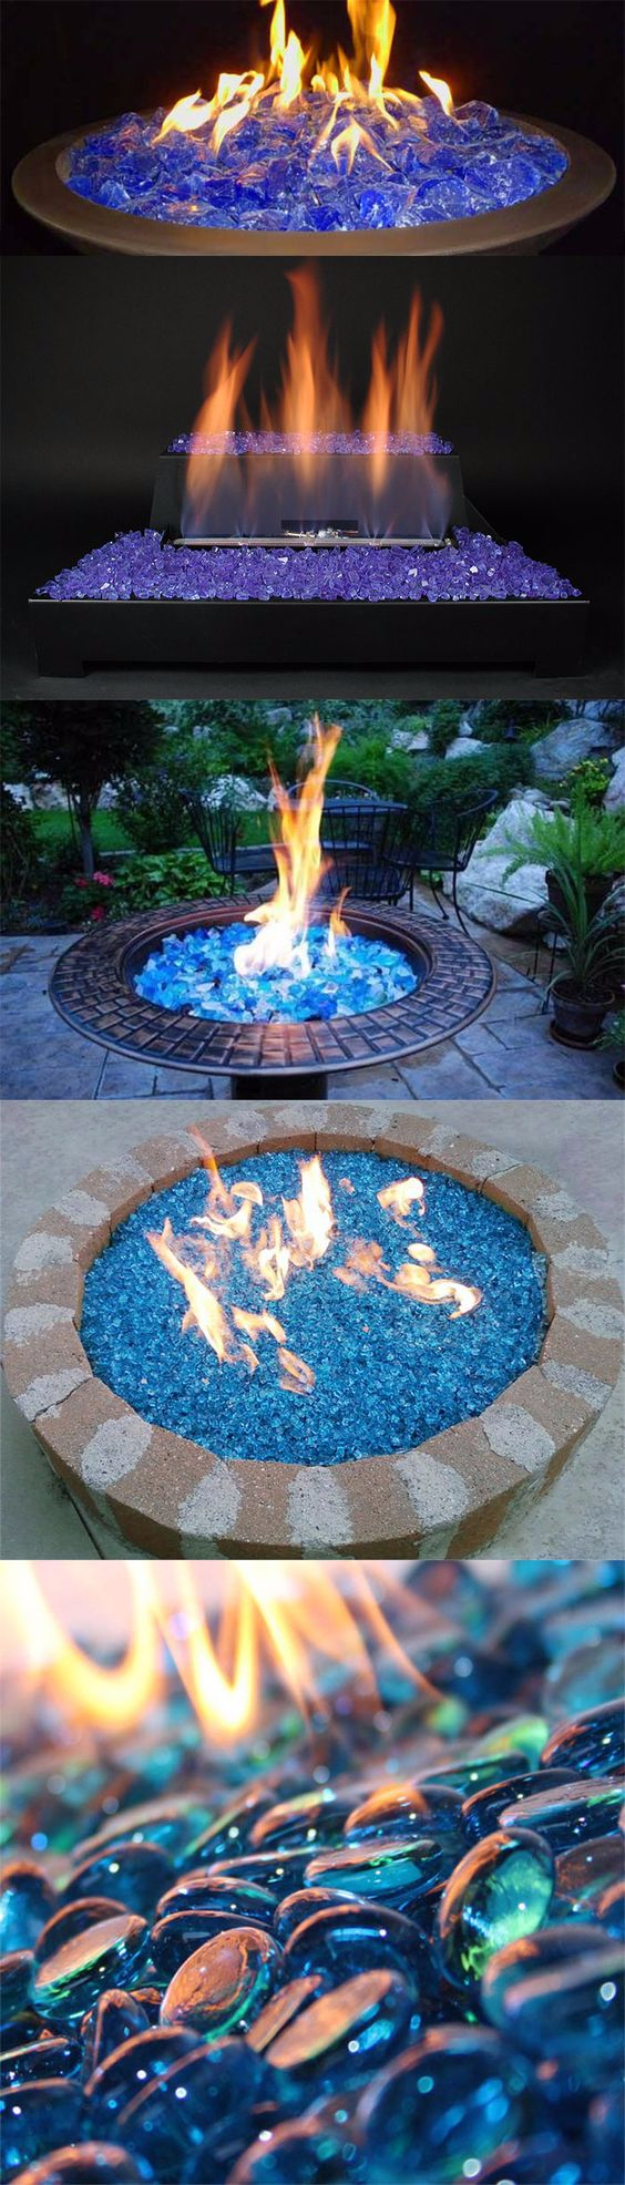 DIY Fireplace Ideas - Fireglass Ice On Fire - Do It Yourself Firepit Projects and Fireplaces for Your Yard, Patio, Porch and Home. Outdoor Fire Pit Tutorials for Backyard with Easy Step by Step Tutorials - Cool DIY Projects for Men #diyideas #outdoors #diy